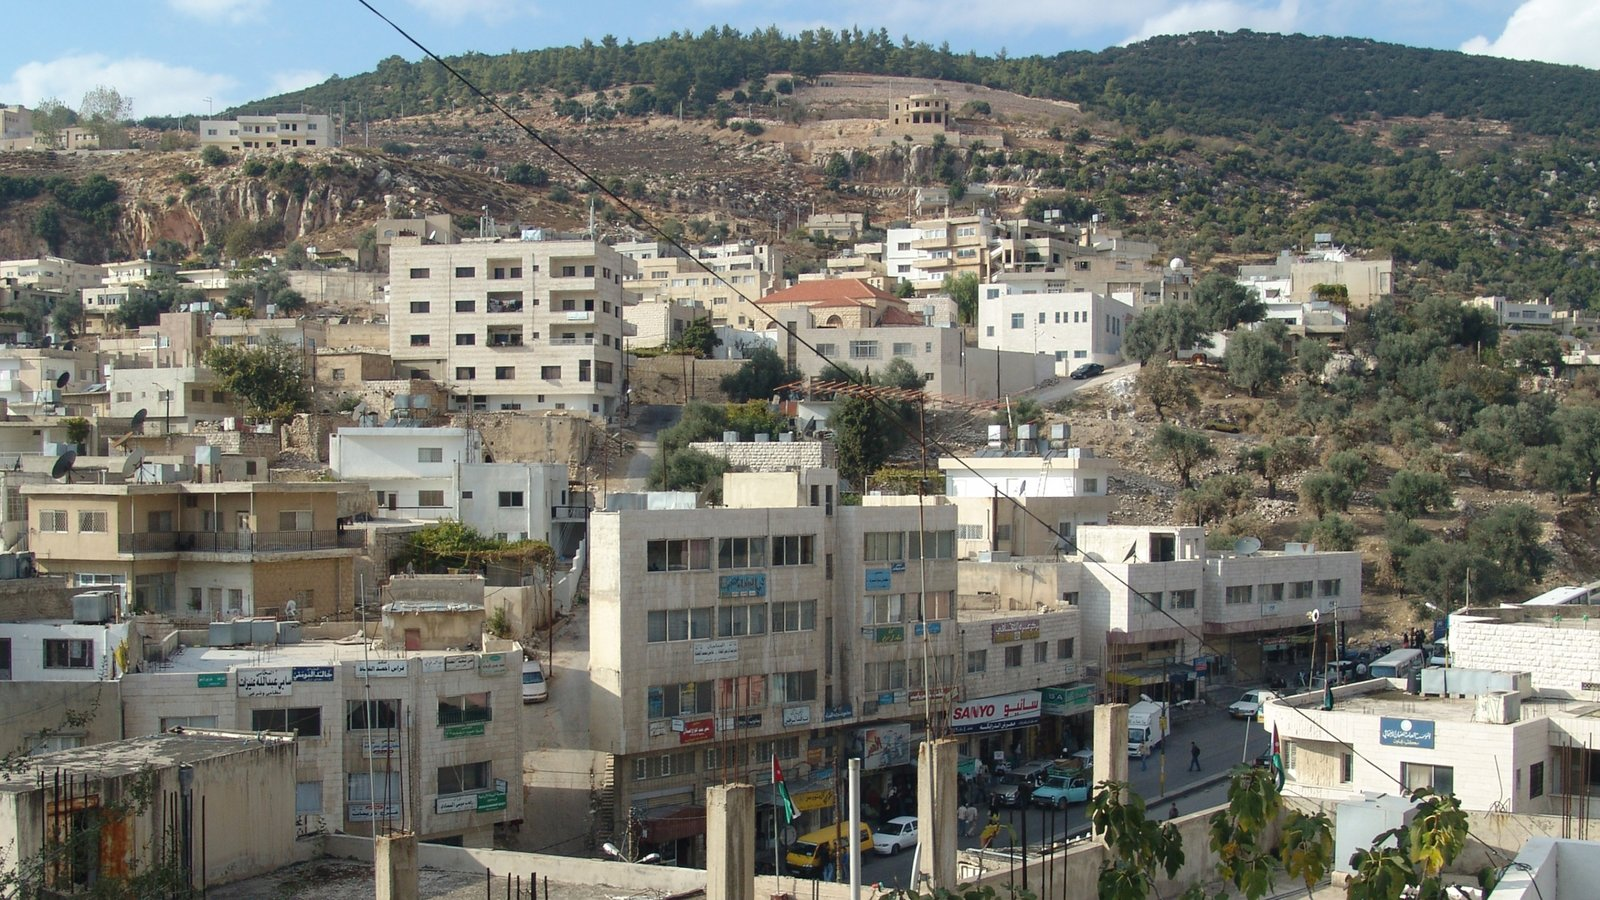 Ajloun featuring a city